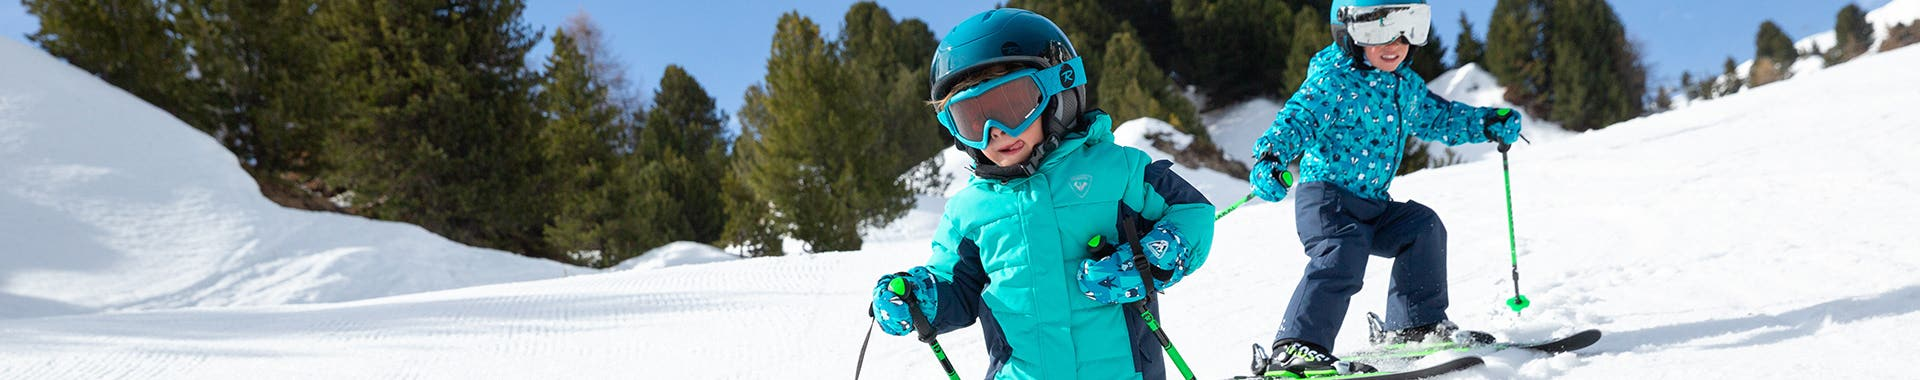 Kids ski jackets - girls